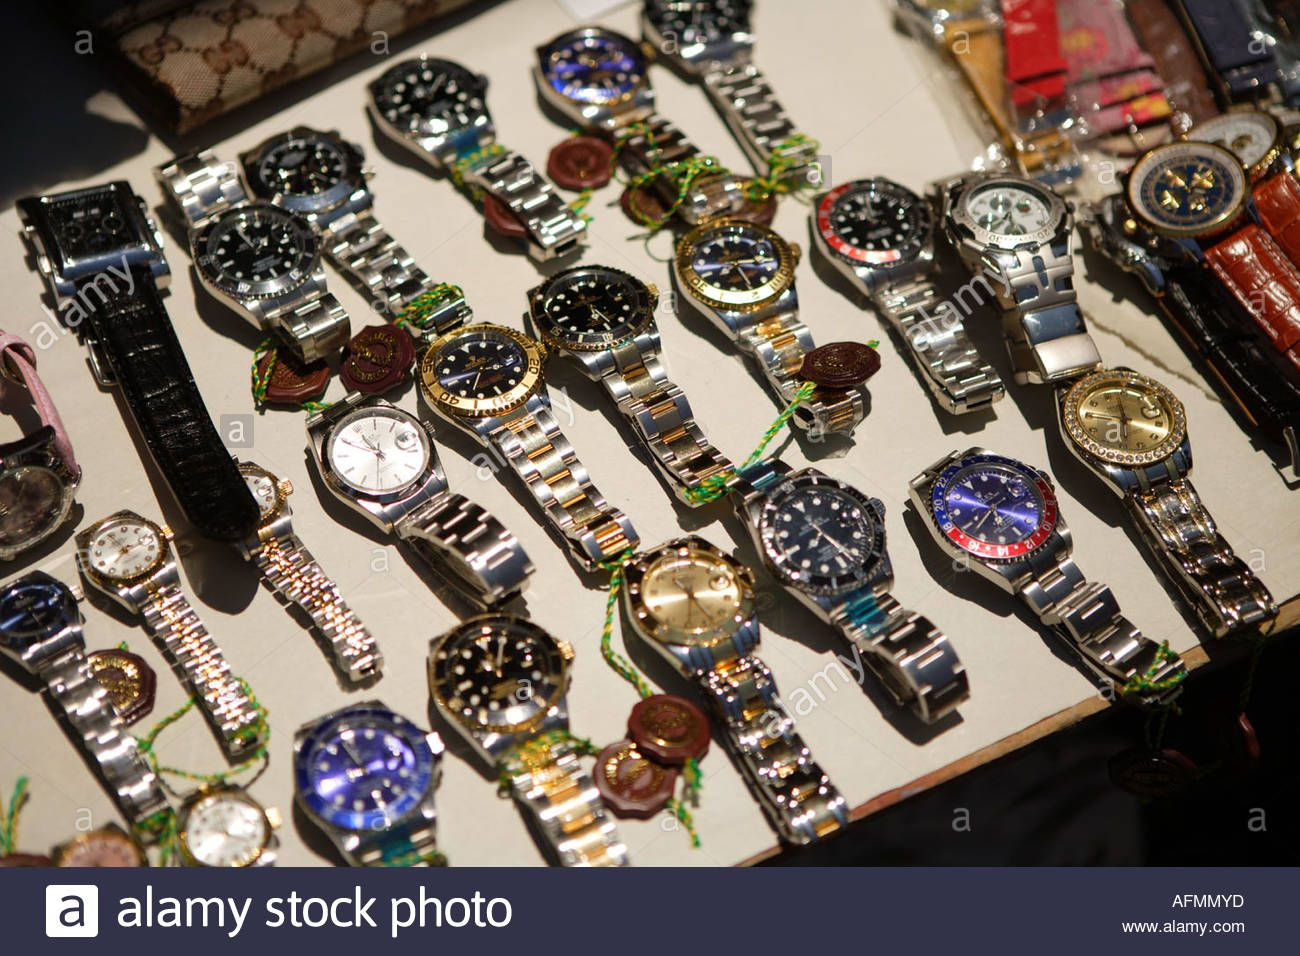 Download This Stock Image Fake Rolex Watches For Sale At The Straw Market Downtown Bay Street Nassau New Provide Rolex Watches For Sale Rolex Watches Rolex